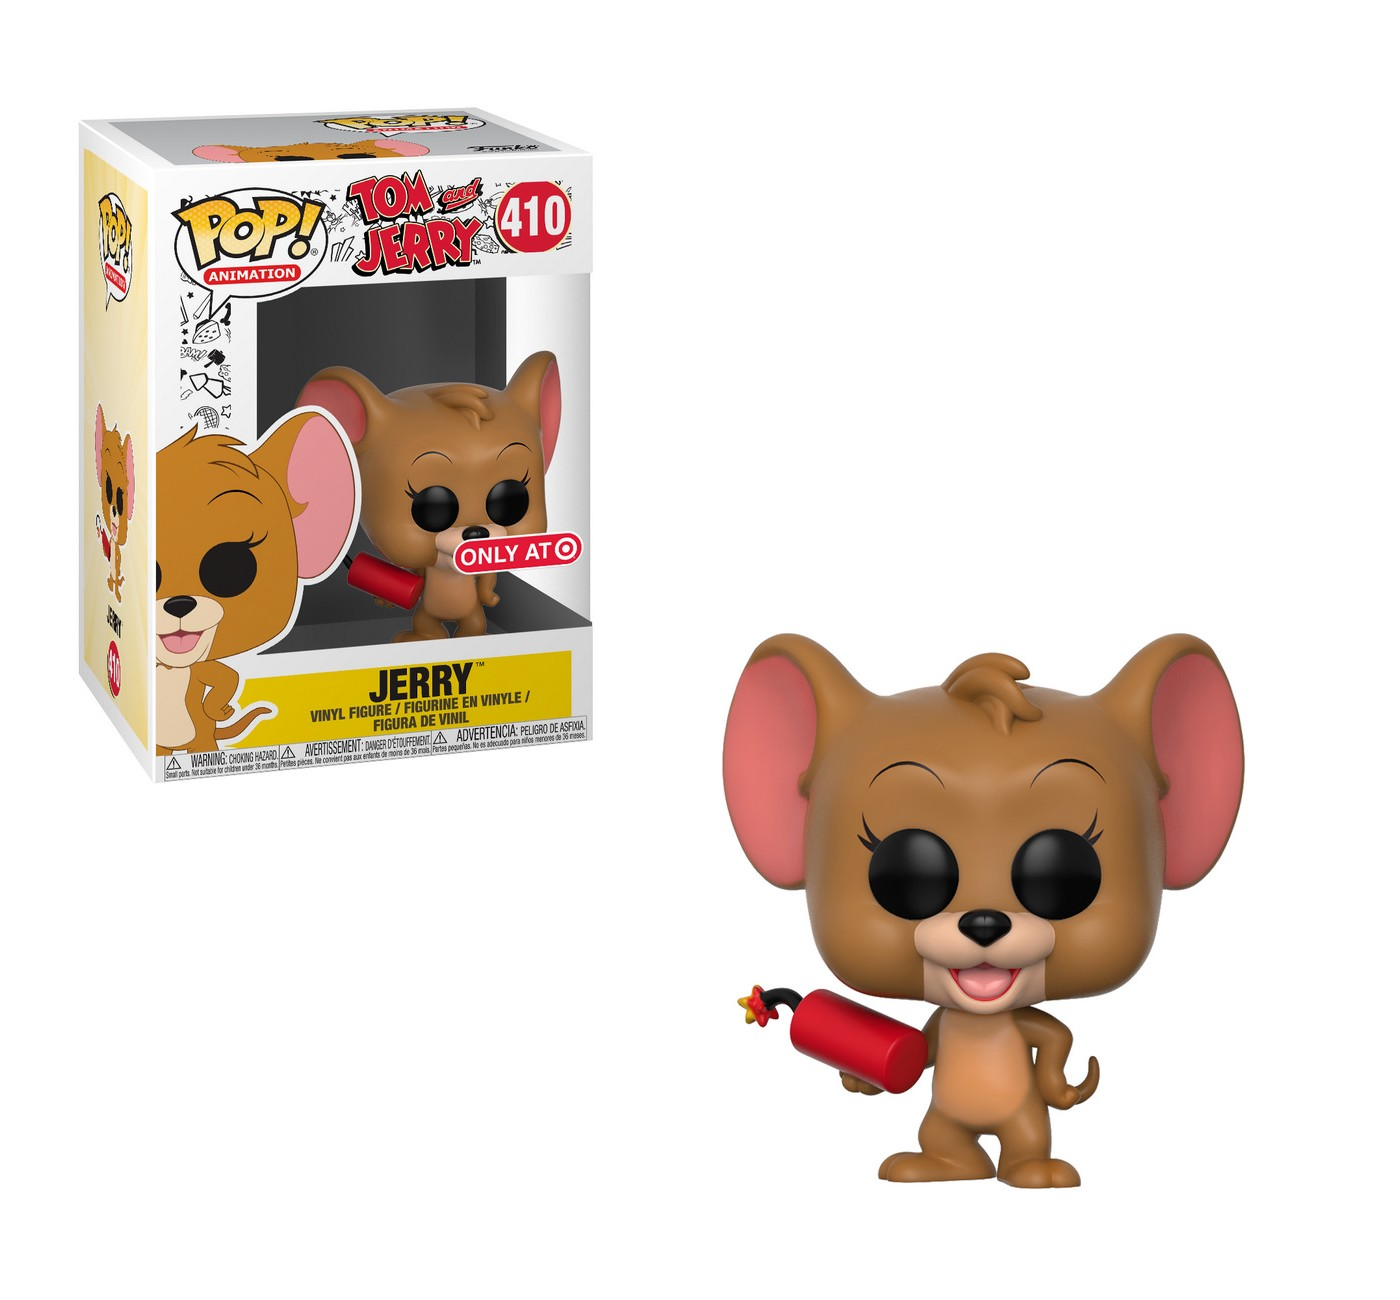 Funko POP! Animation Tom and Jerry S1- Jerry with Explosives (Exclusive) Mini Figure - image 1 of 3